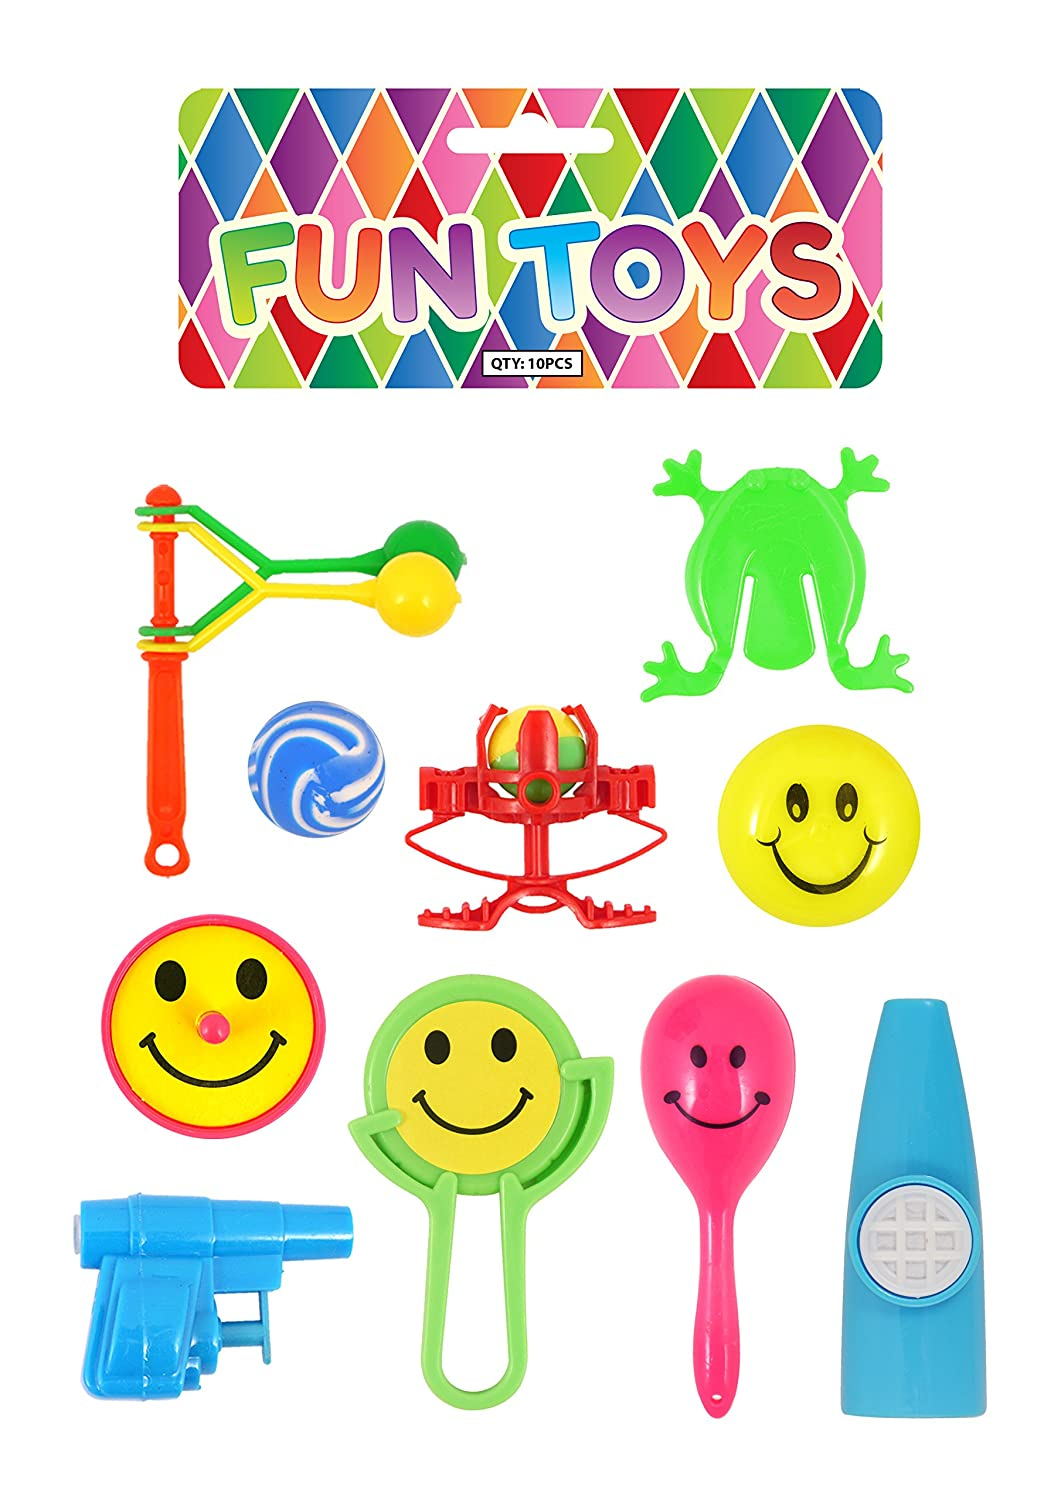 10 boys,girls, party toys,buy 2 get1 free,loot bag favours,pass the parcel games,supplied by bohoisland. HENBRANDT LTD